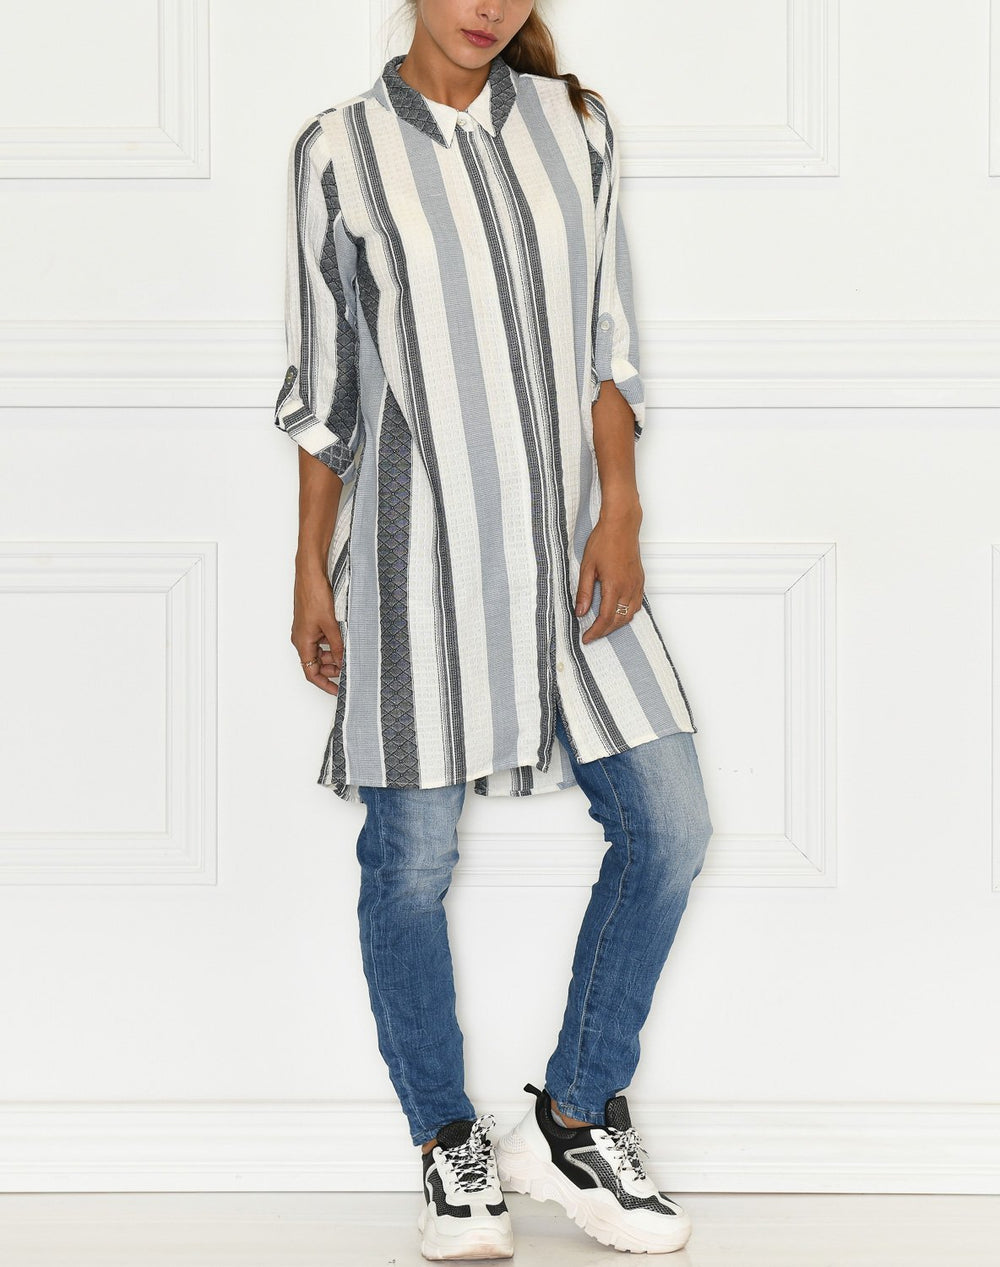 Ofelia Syrena long shirt 2 off white / grey - Online-Mode